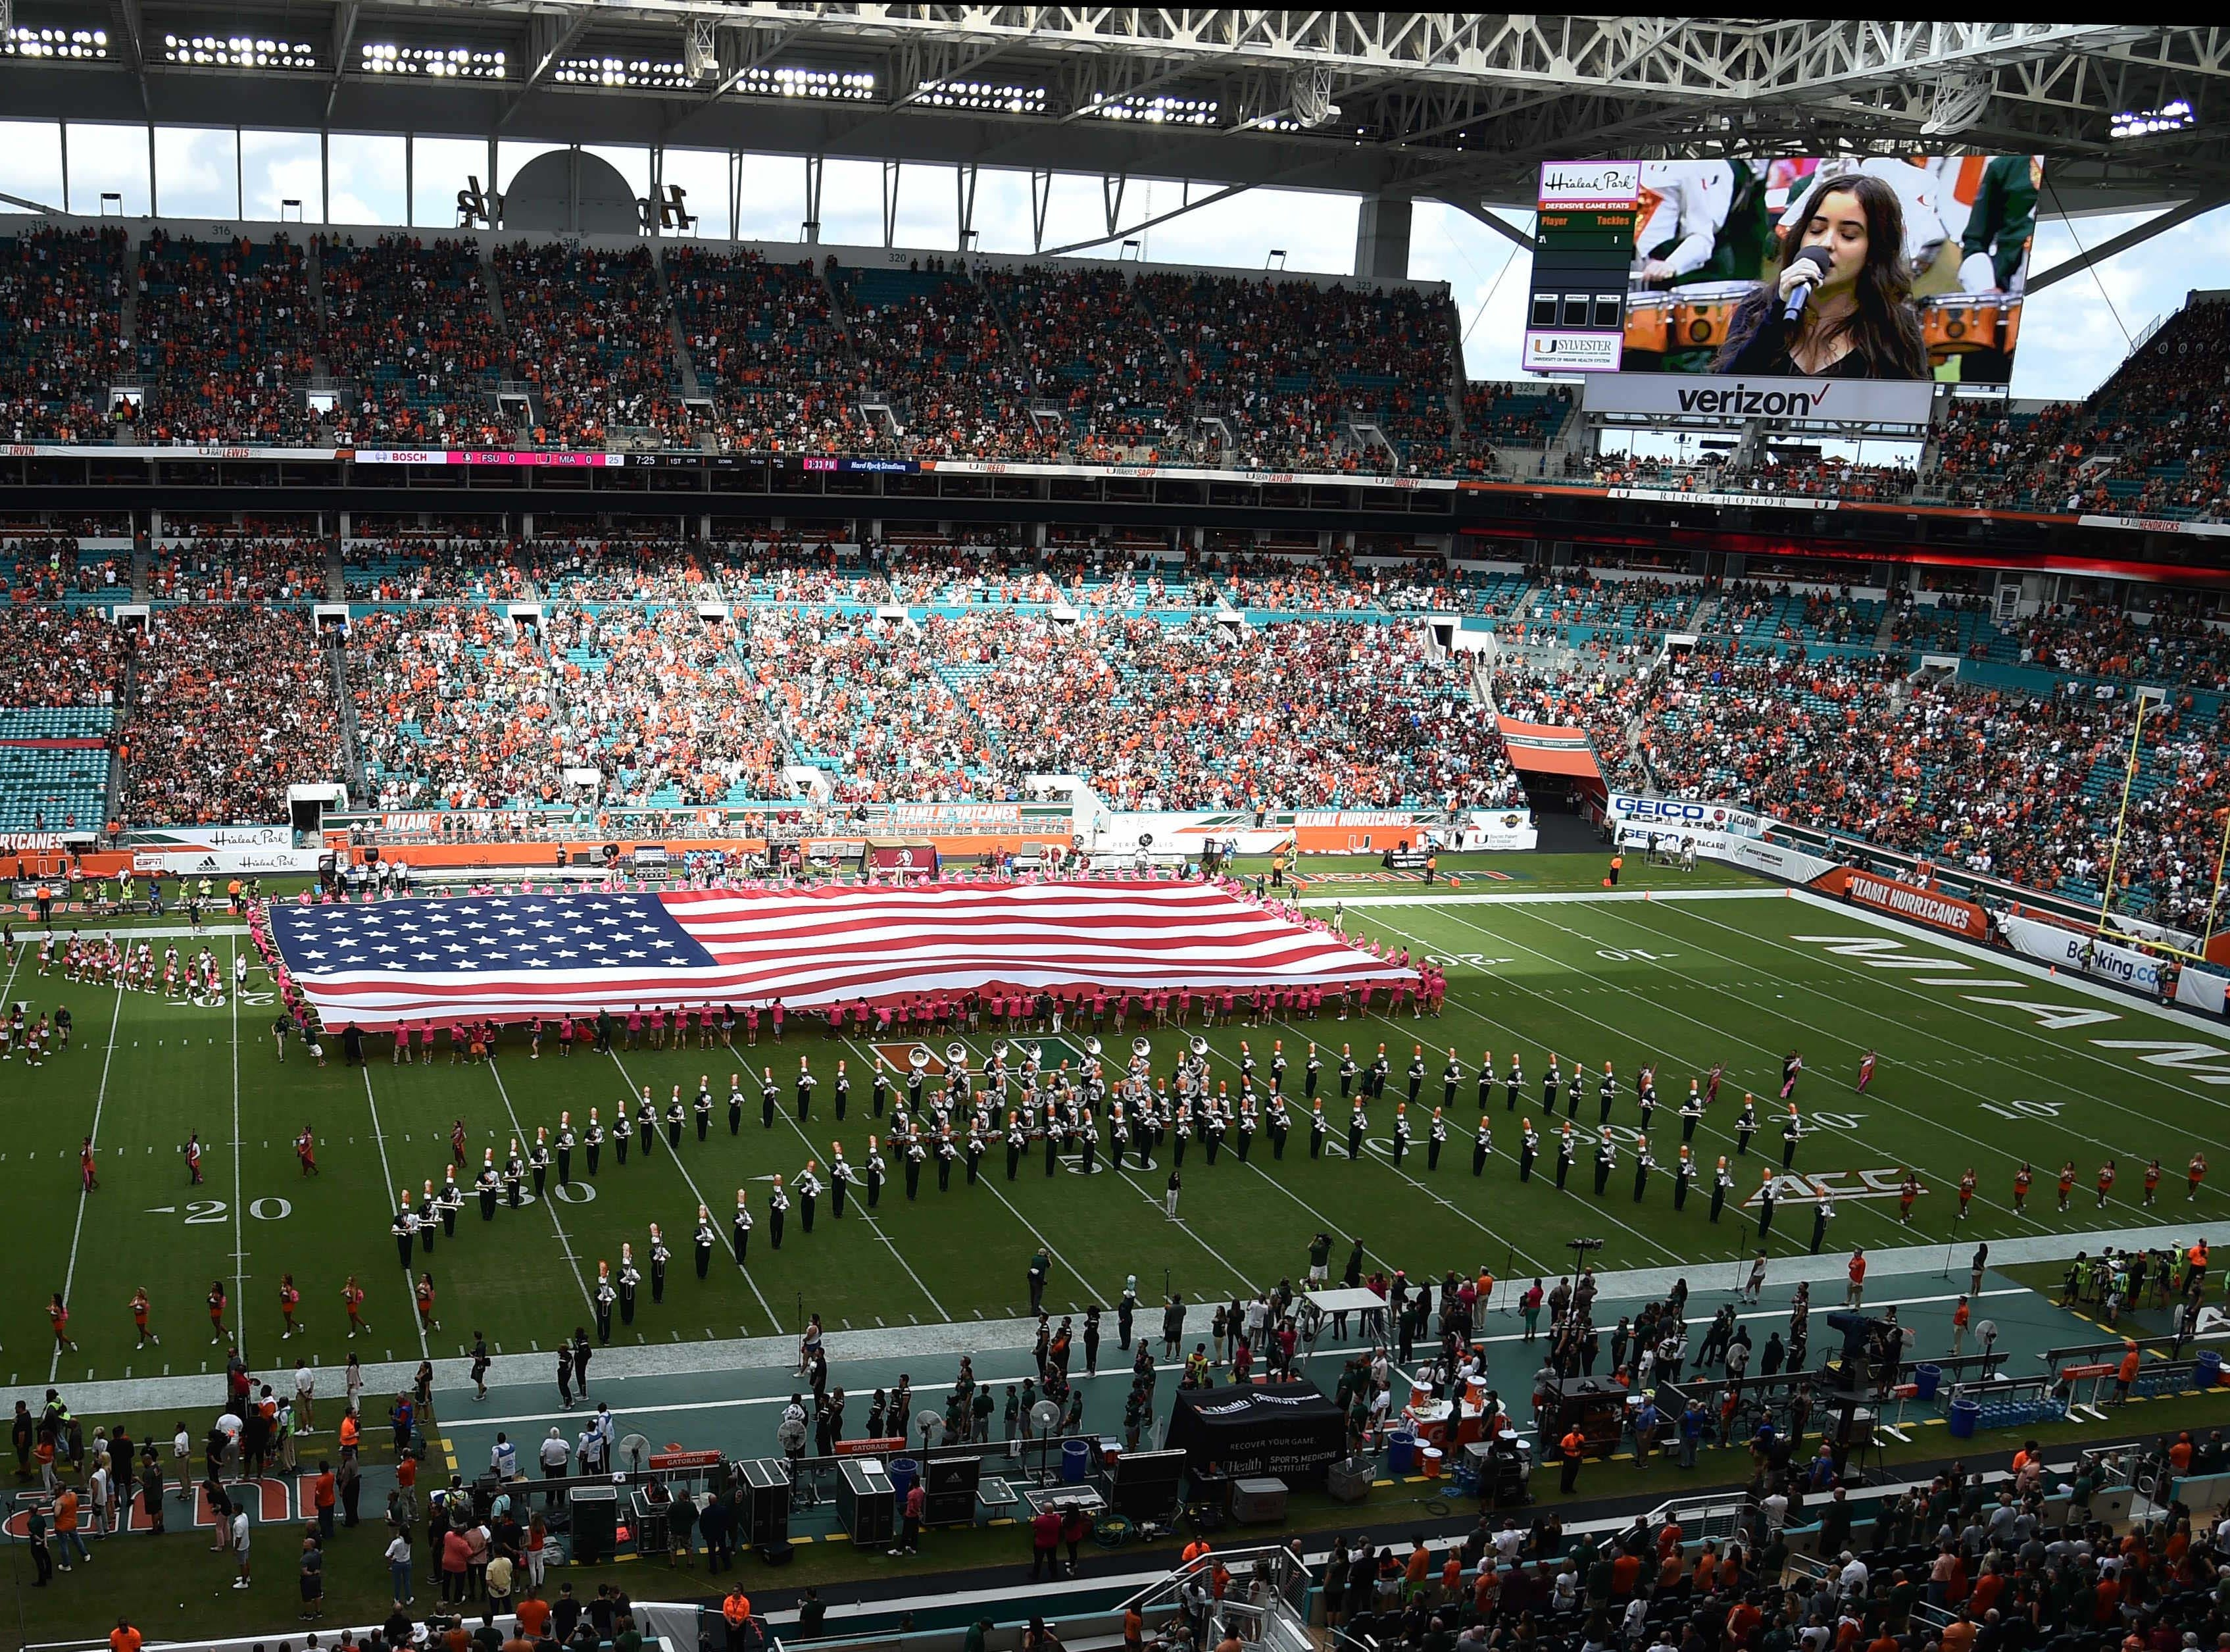 Oct 6, 2018; Miami Gardens, FL, USA; A huge American flag is seen during the national anthem before a game between the Florida State Seminoles and the Miami Hurricanes at Hard Rock Stadium. Mandatory Credit: Steve Mitchell-USA TODAY Sports